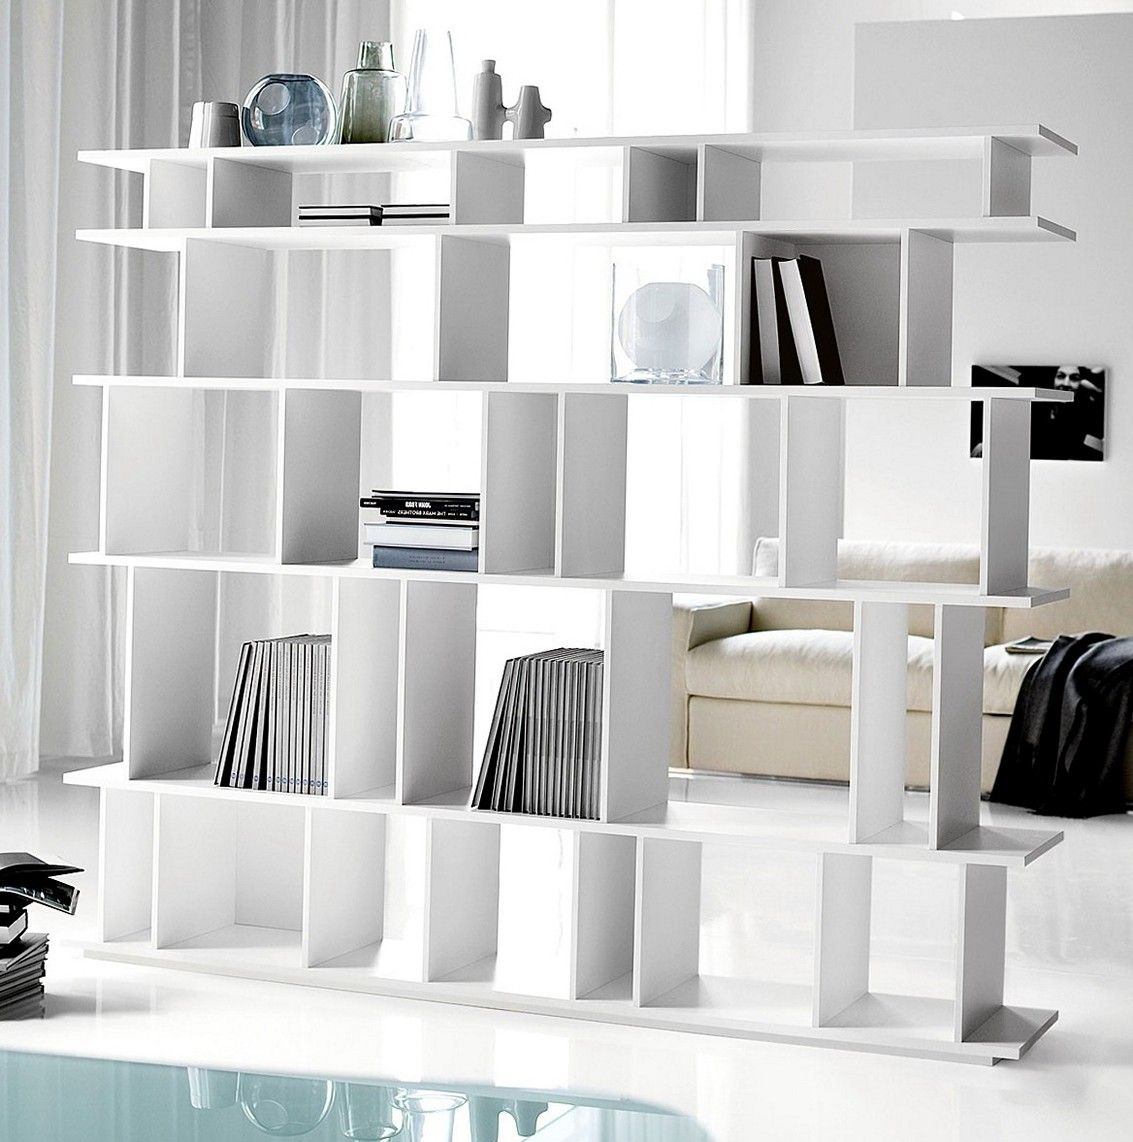 bookcase p bookcases open white office divider in mn room modern whitegrey bookshelf furniture concept kayla